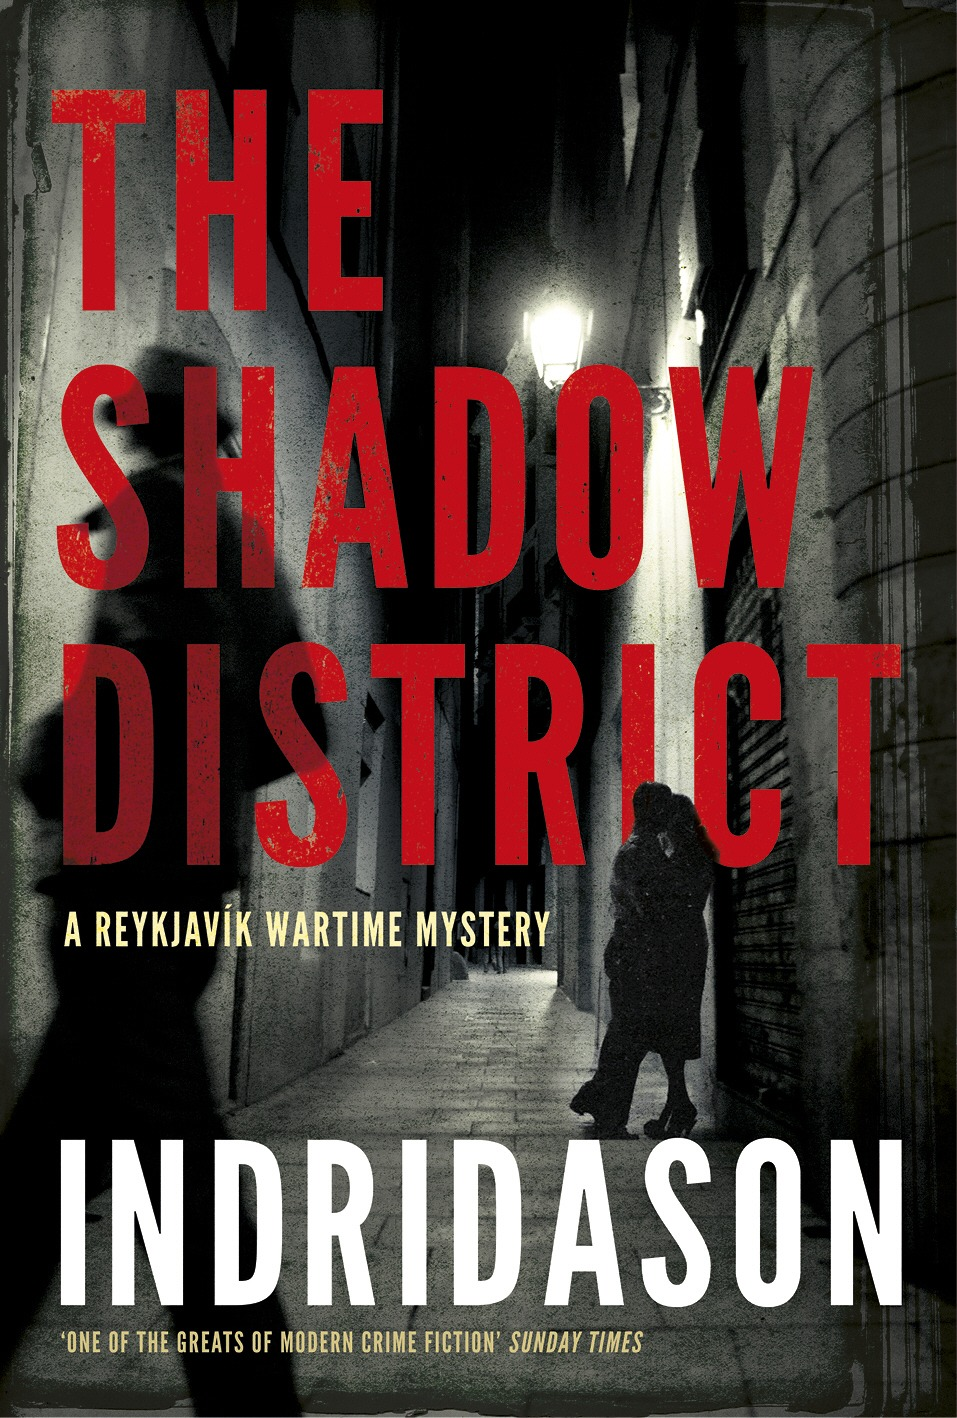 Buy The Shadow District by Arnaldur Indridason